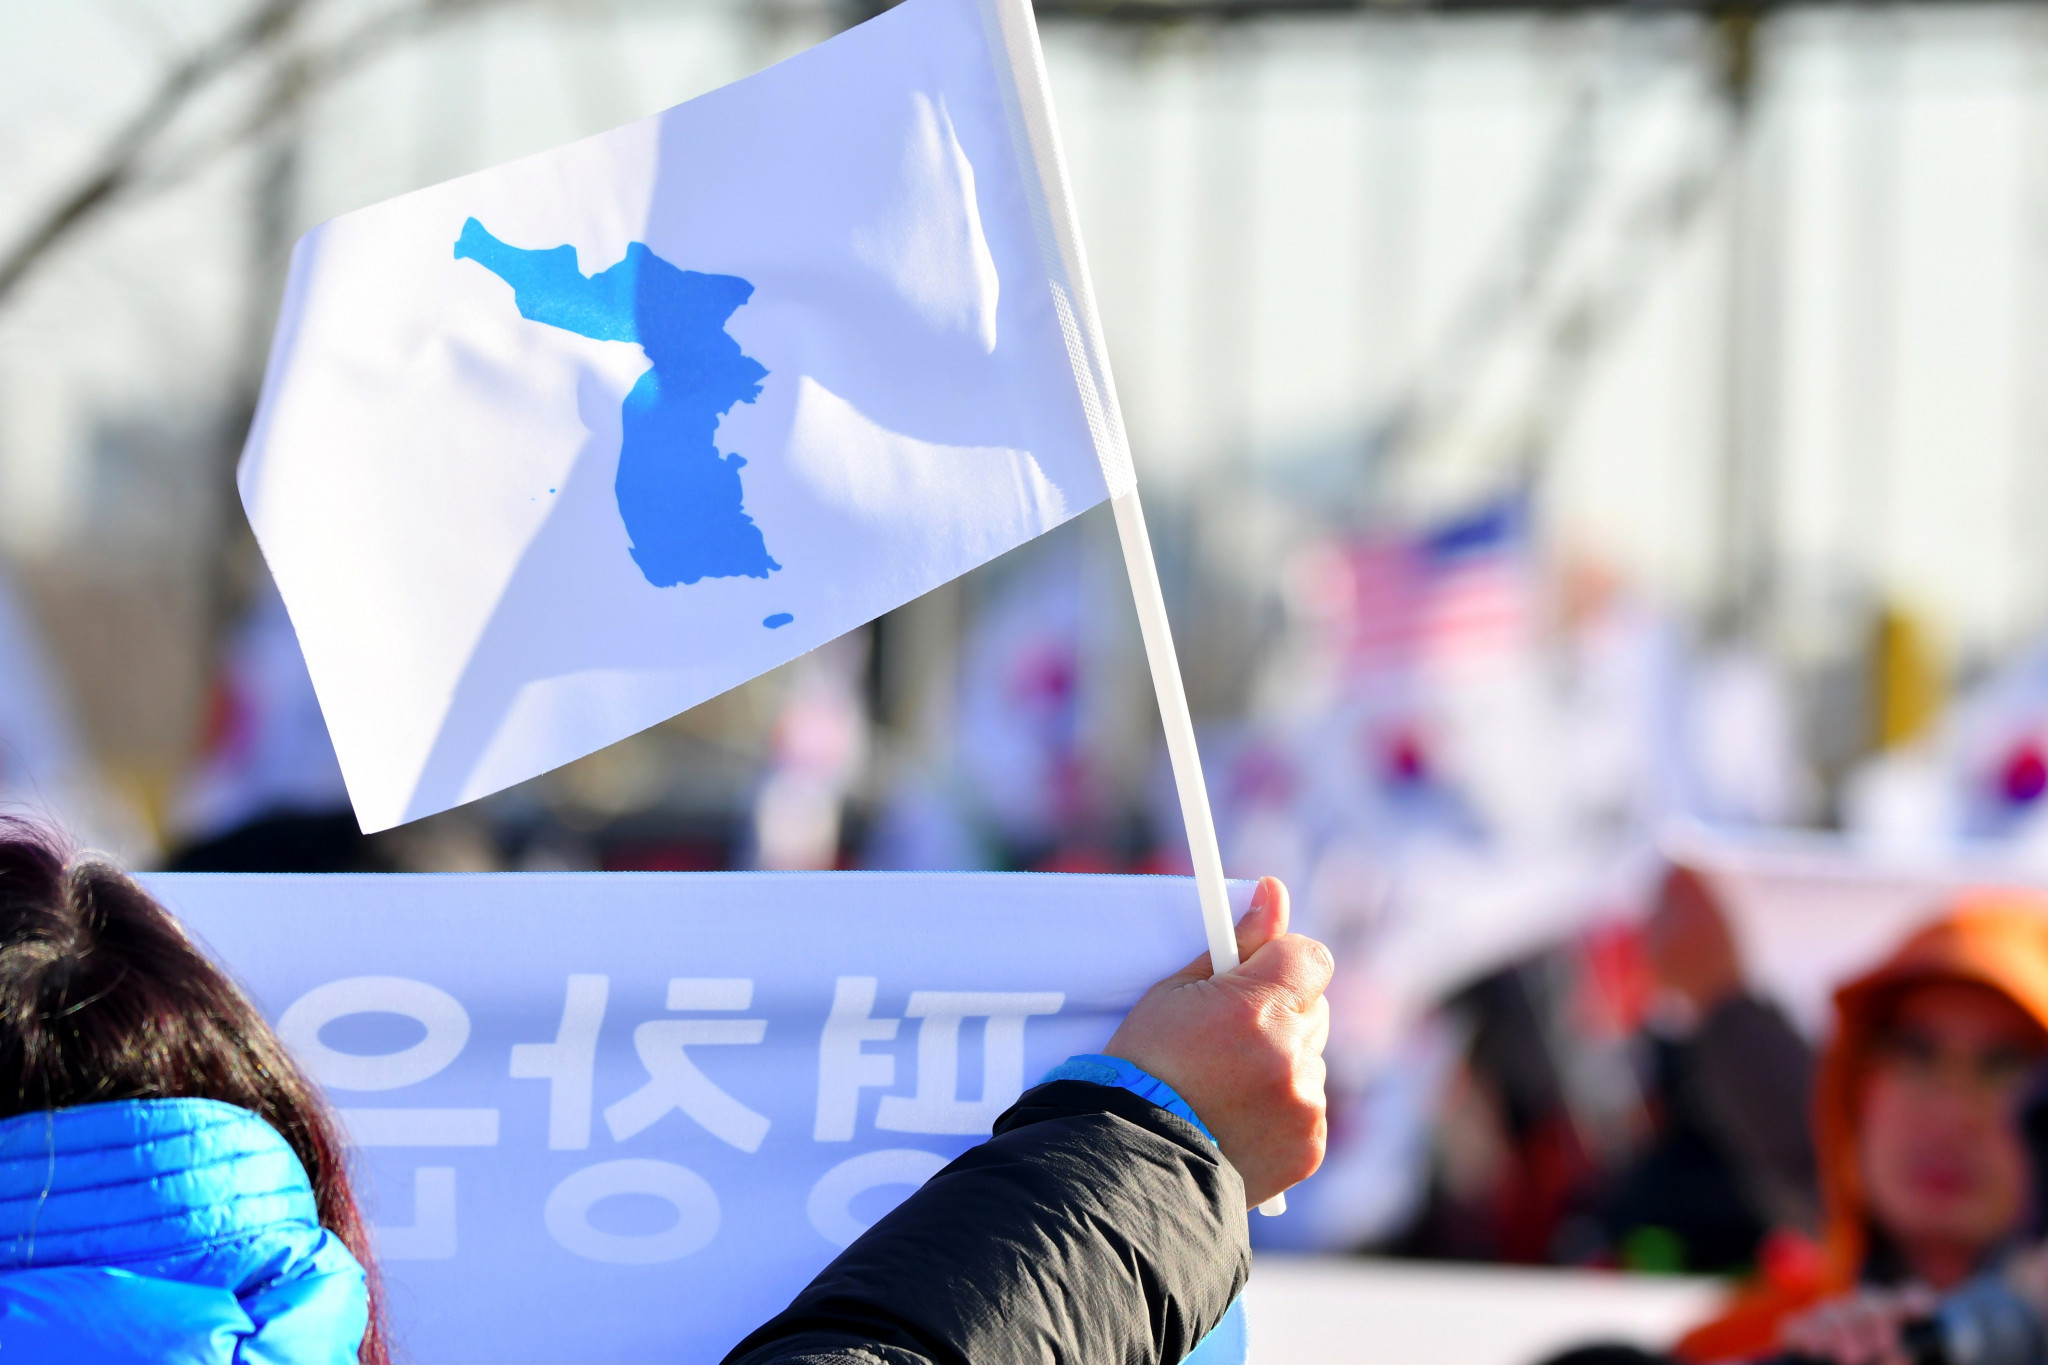 A spectator waving the unified Korean flag in Incheon yesterday before their women's ice hockey team played Sweden in a warm-up match for Pyeongchang 2018 ©Getty Images